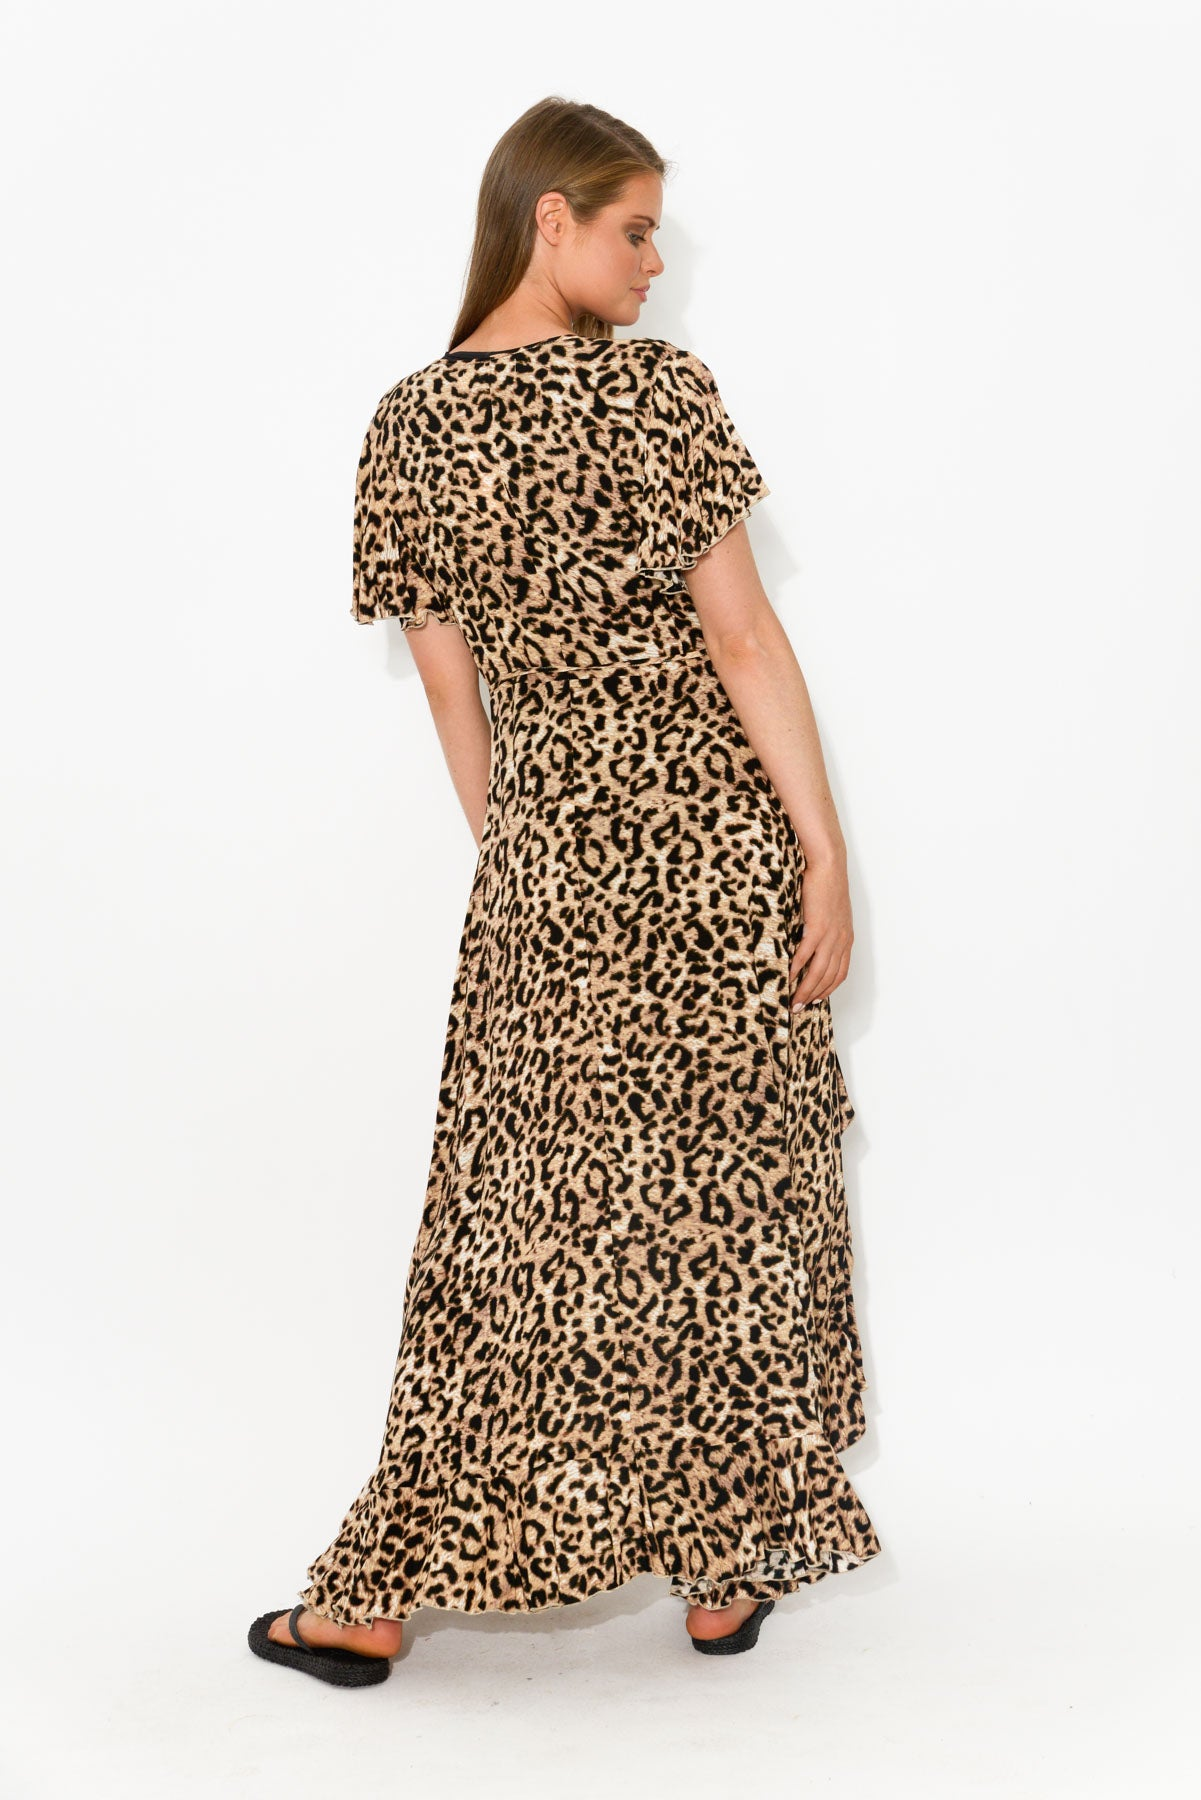 Safari Leopard Wrap Dress - Blue Bungalow